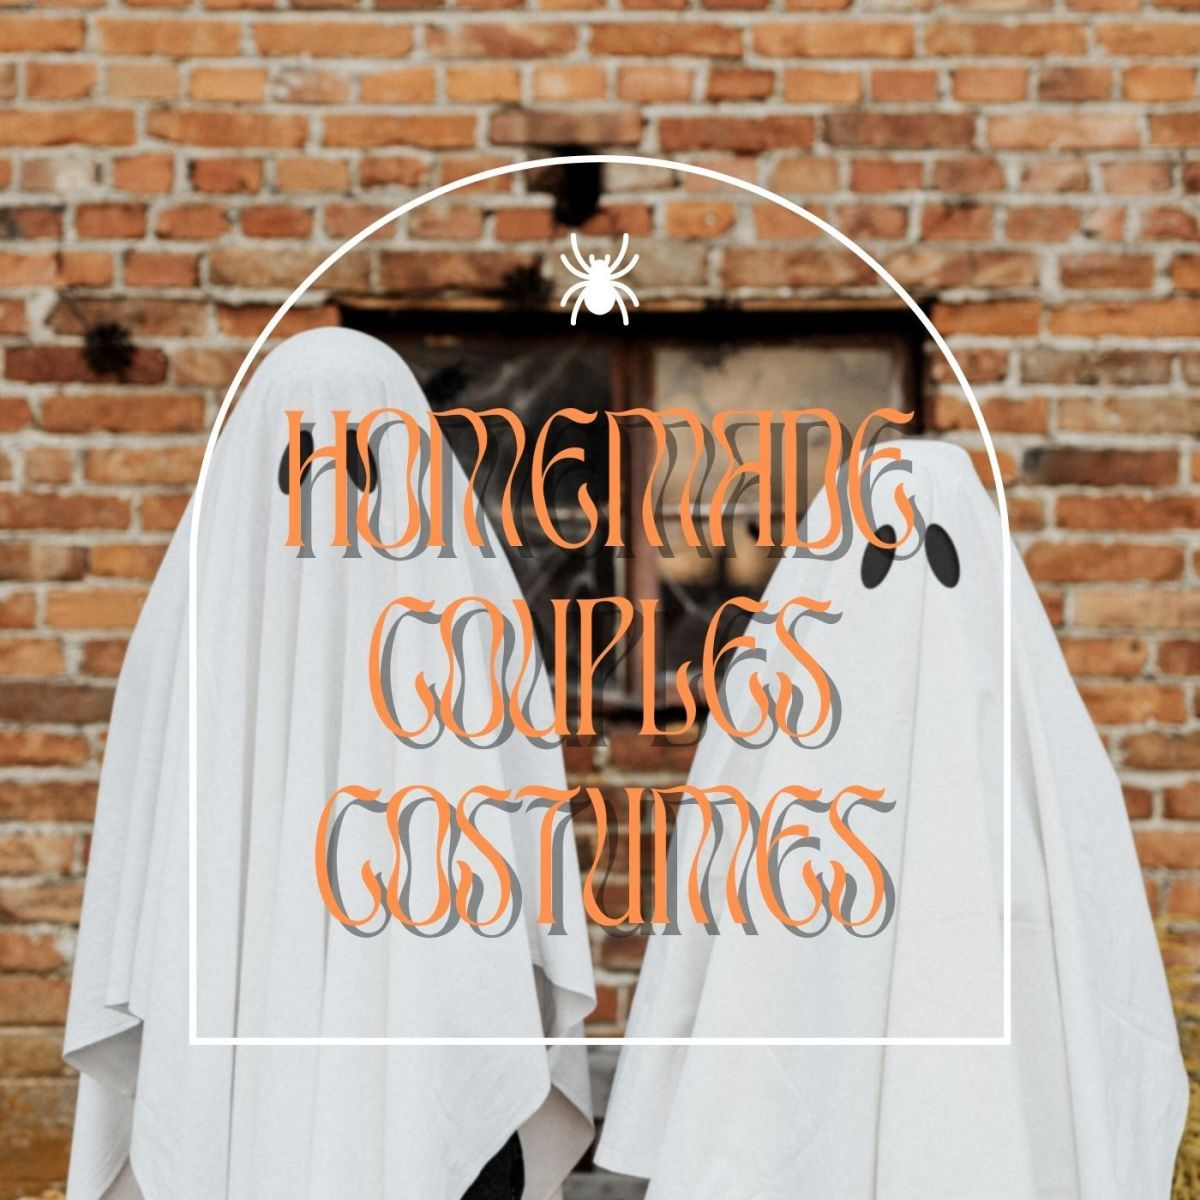 These homemade costume ideas will spark some inspiration.